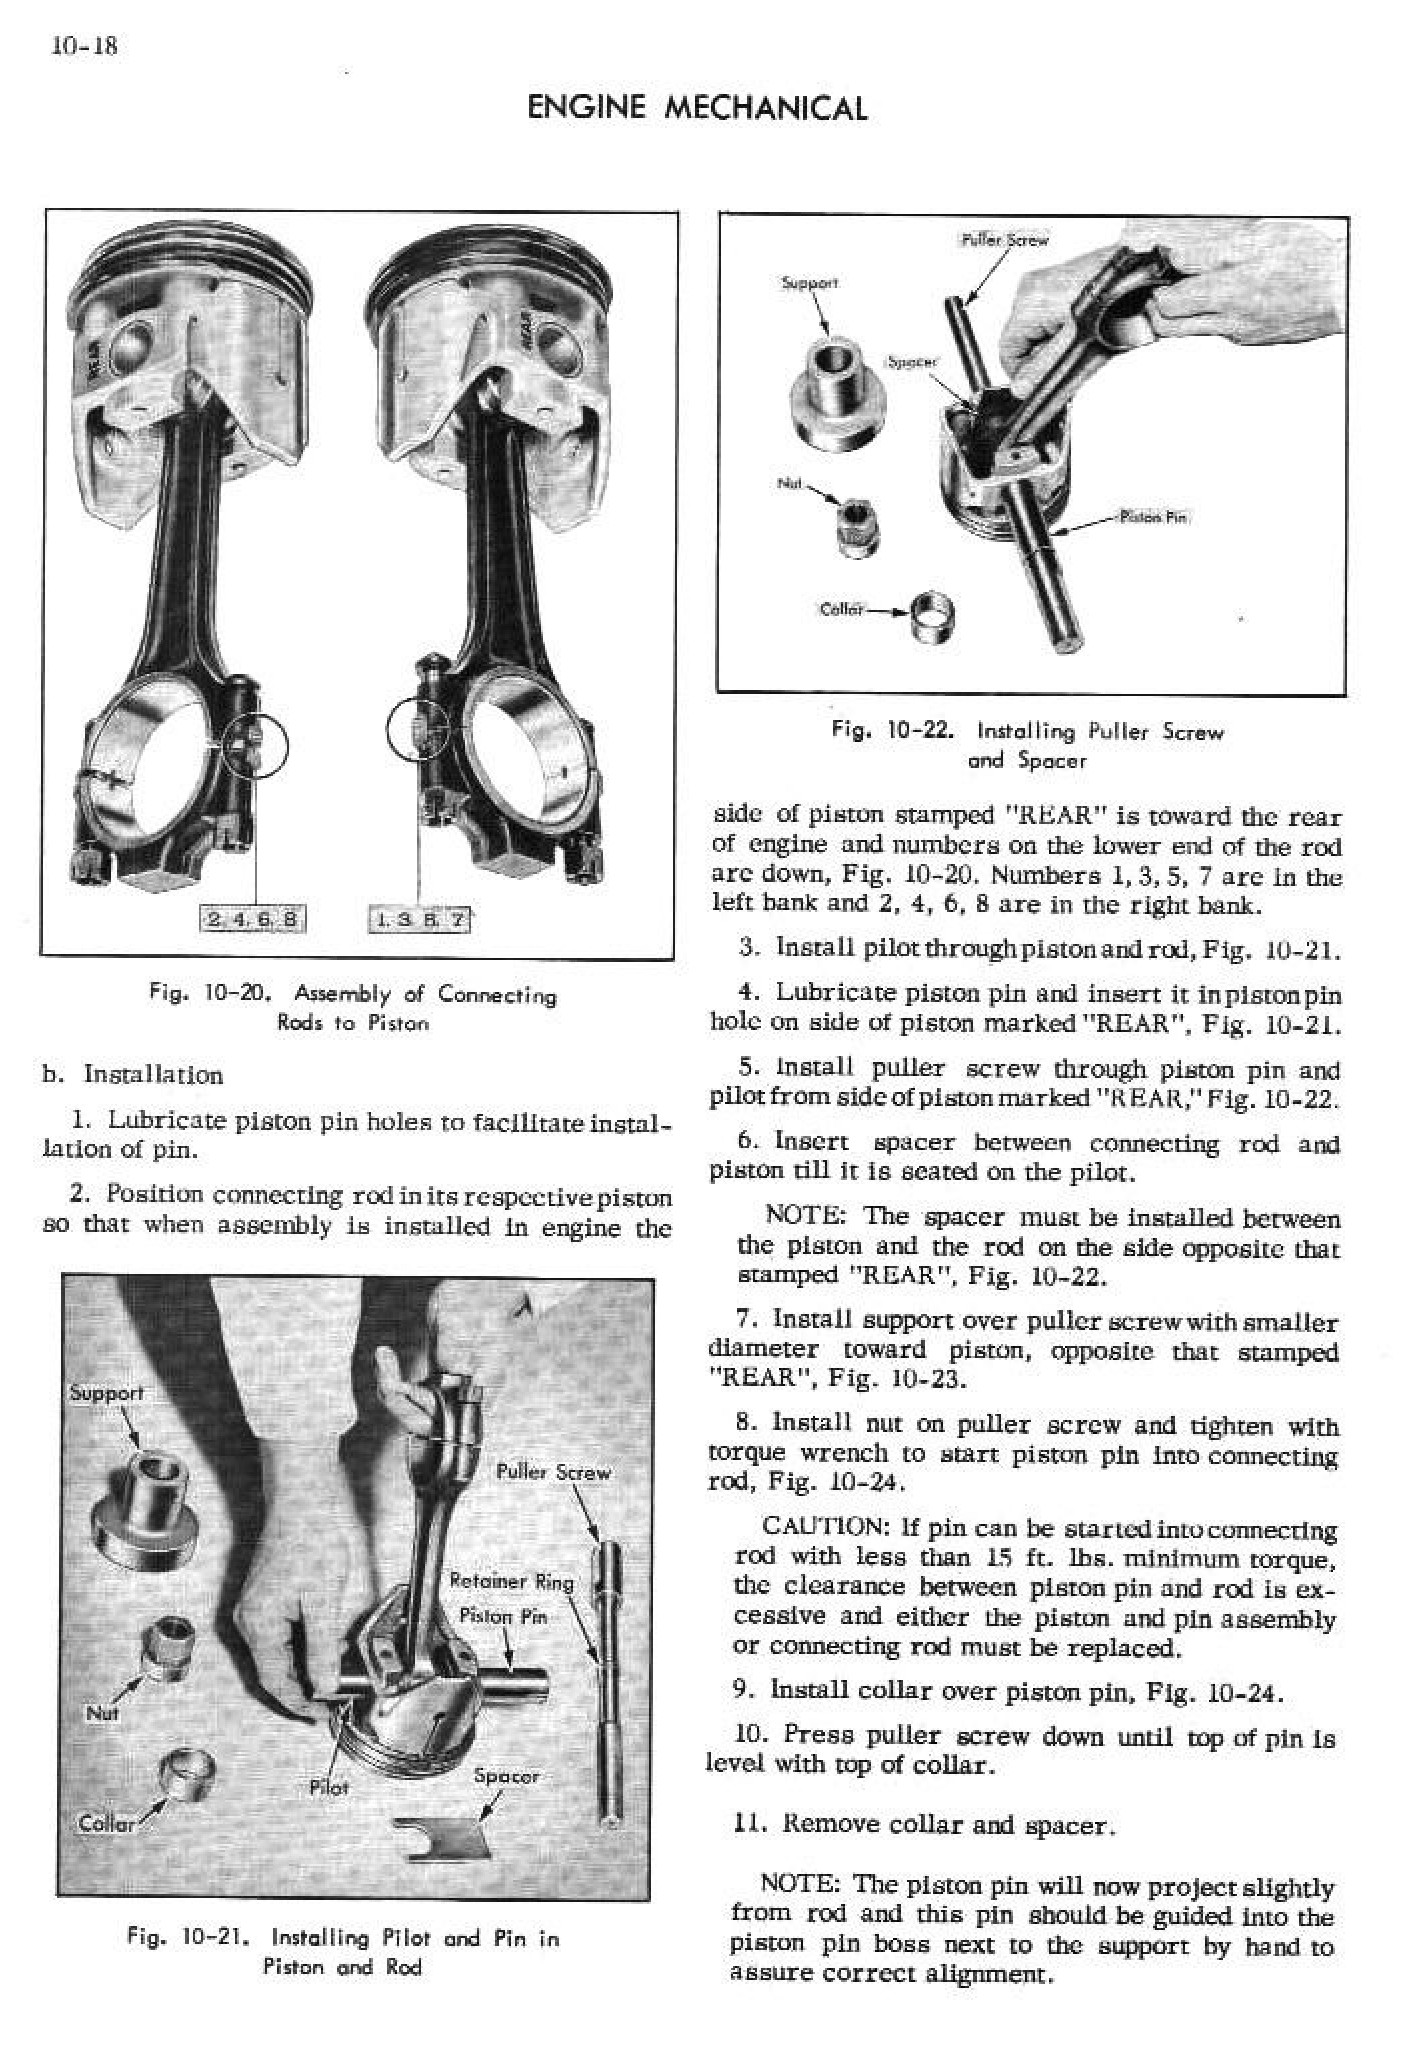 1952 Cadillac Shop Manual- Engine Mechanical Page 18 of 36